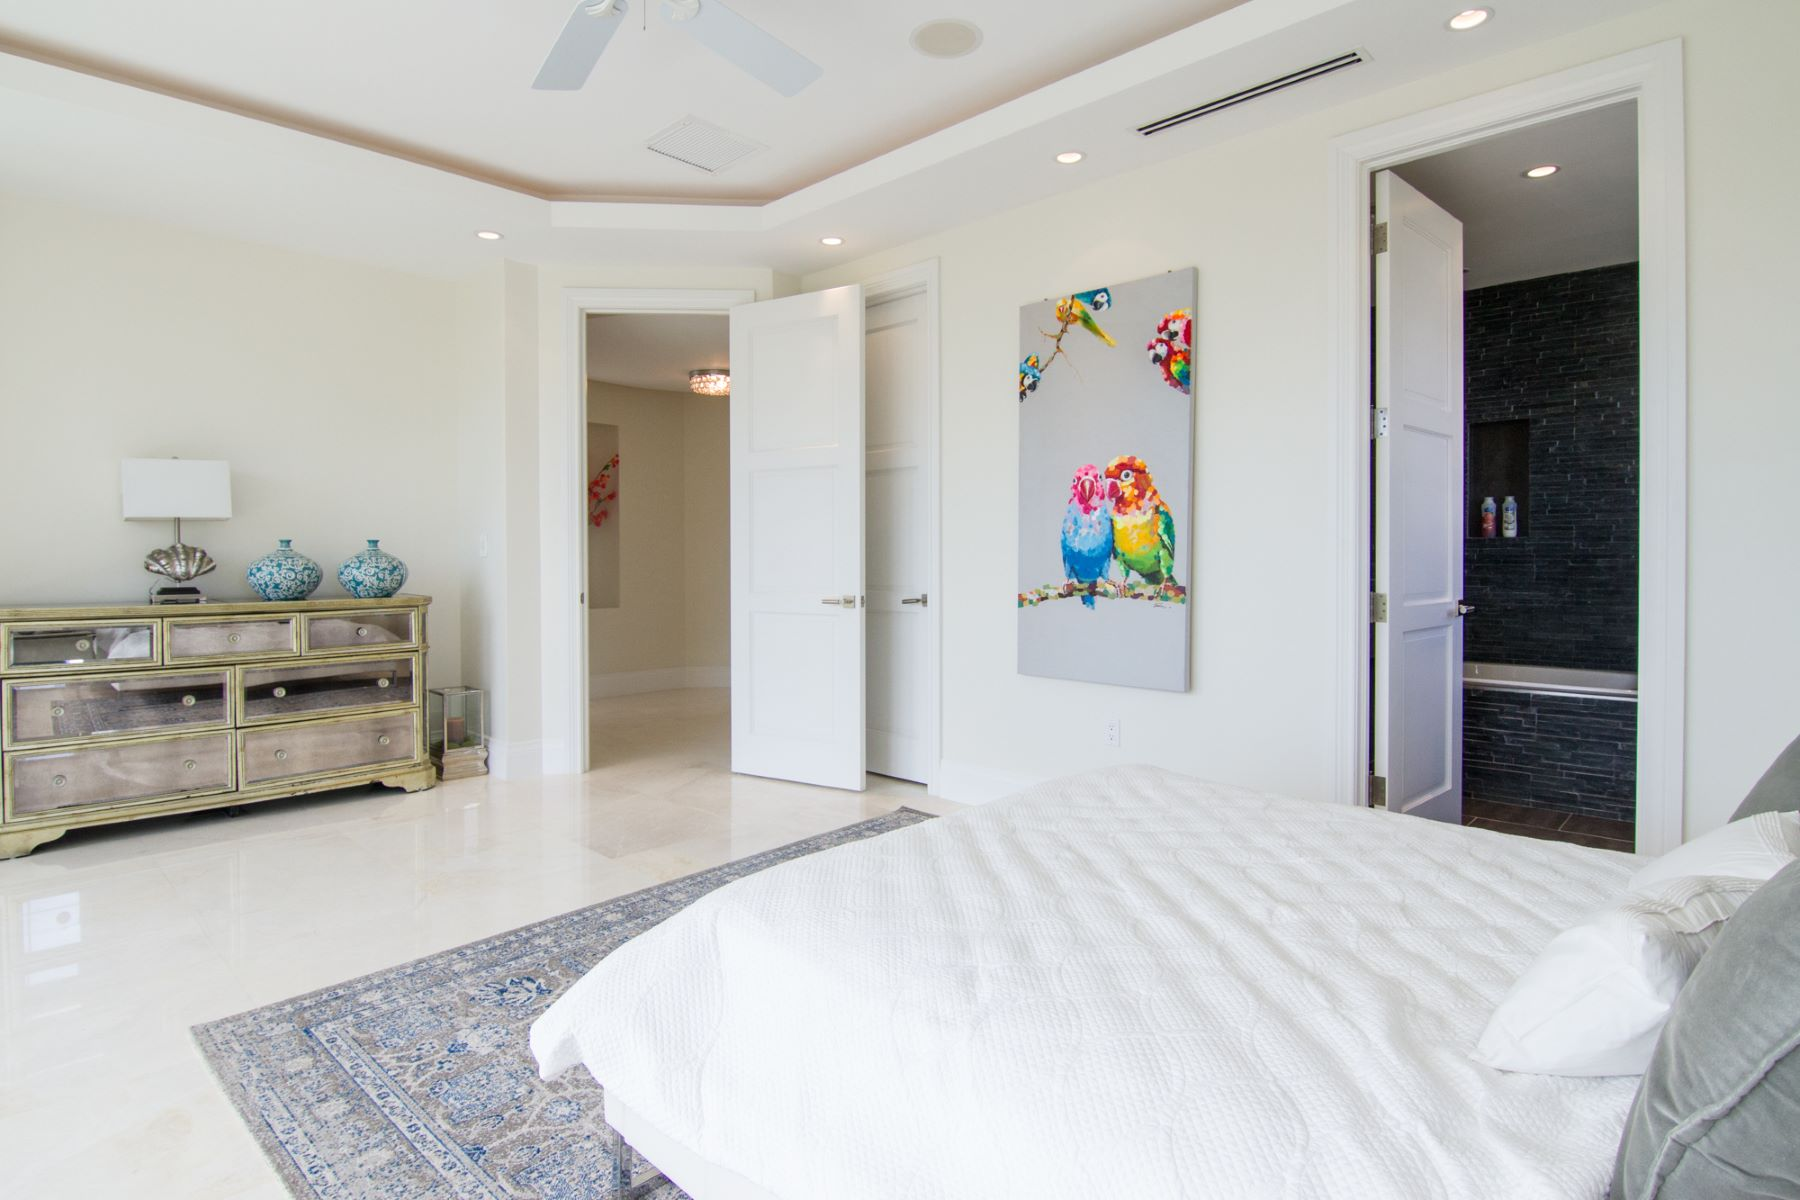 Additional photo for property listing at Mayfair By The Sea 不列颠尼亚, 大开曼岛 开曼群岛